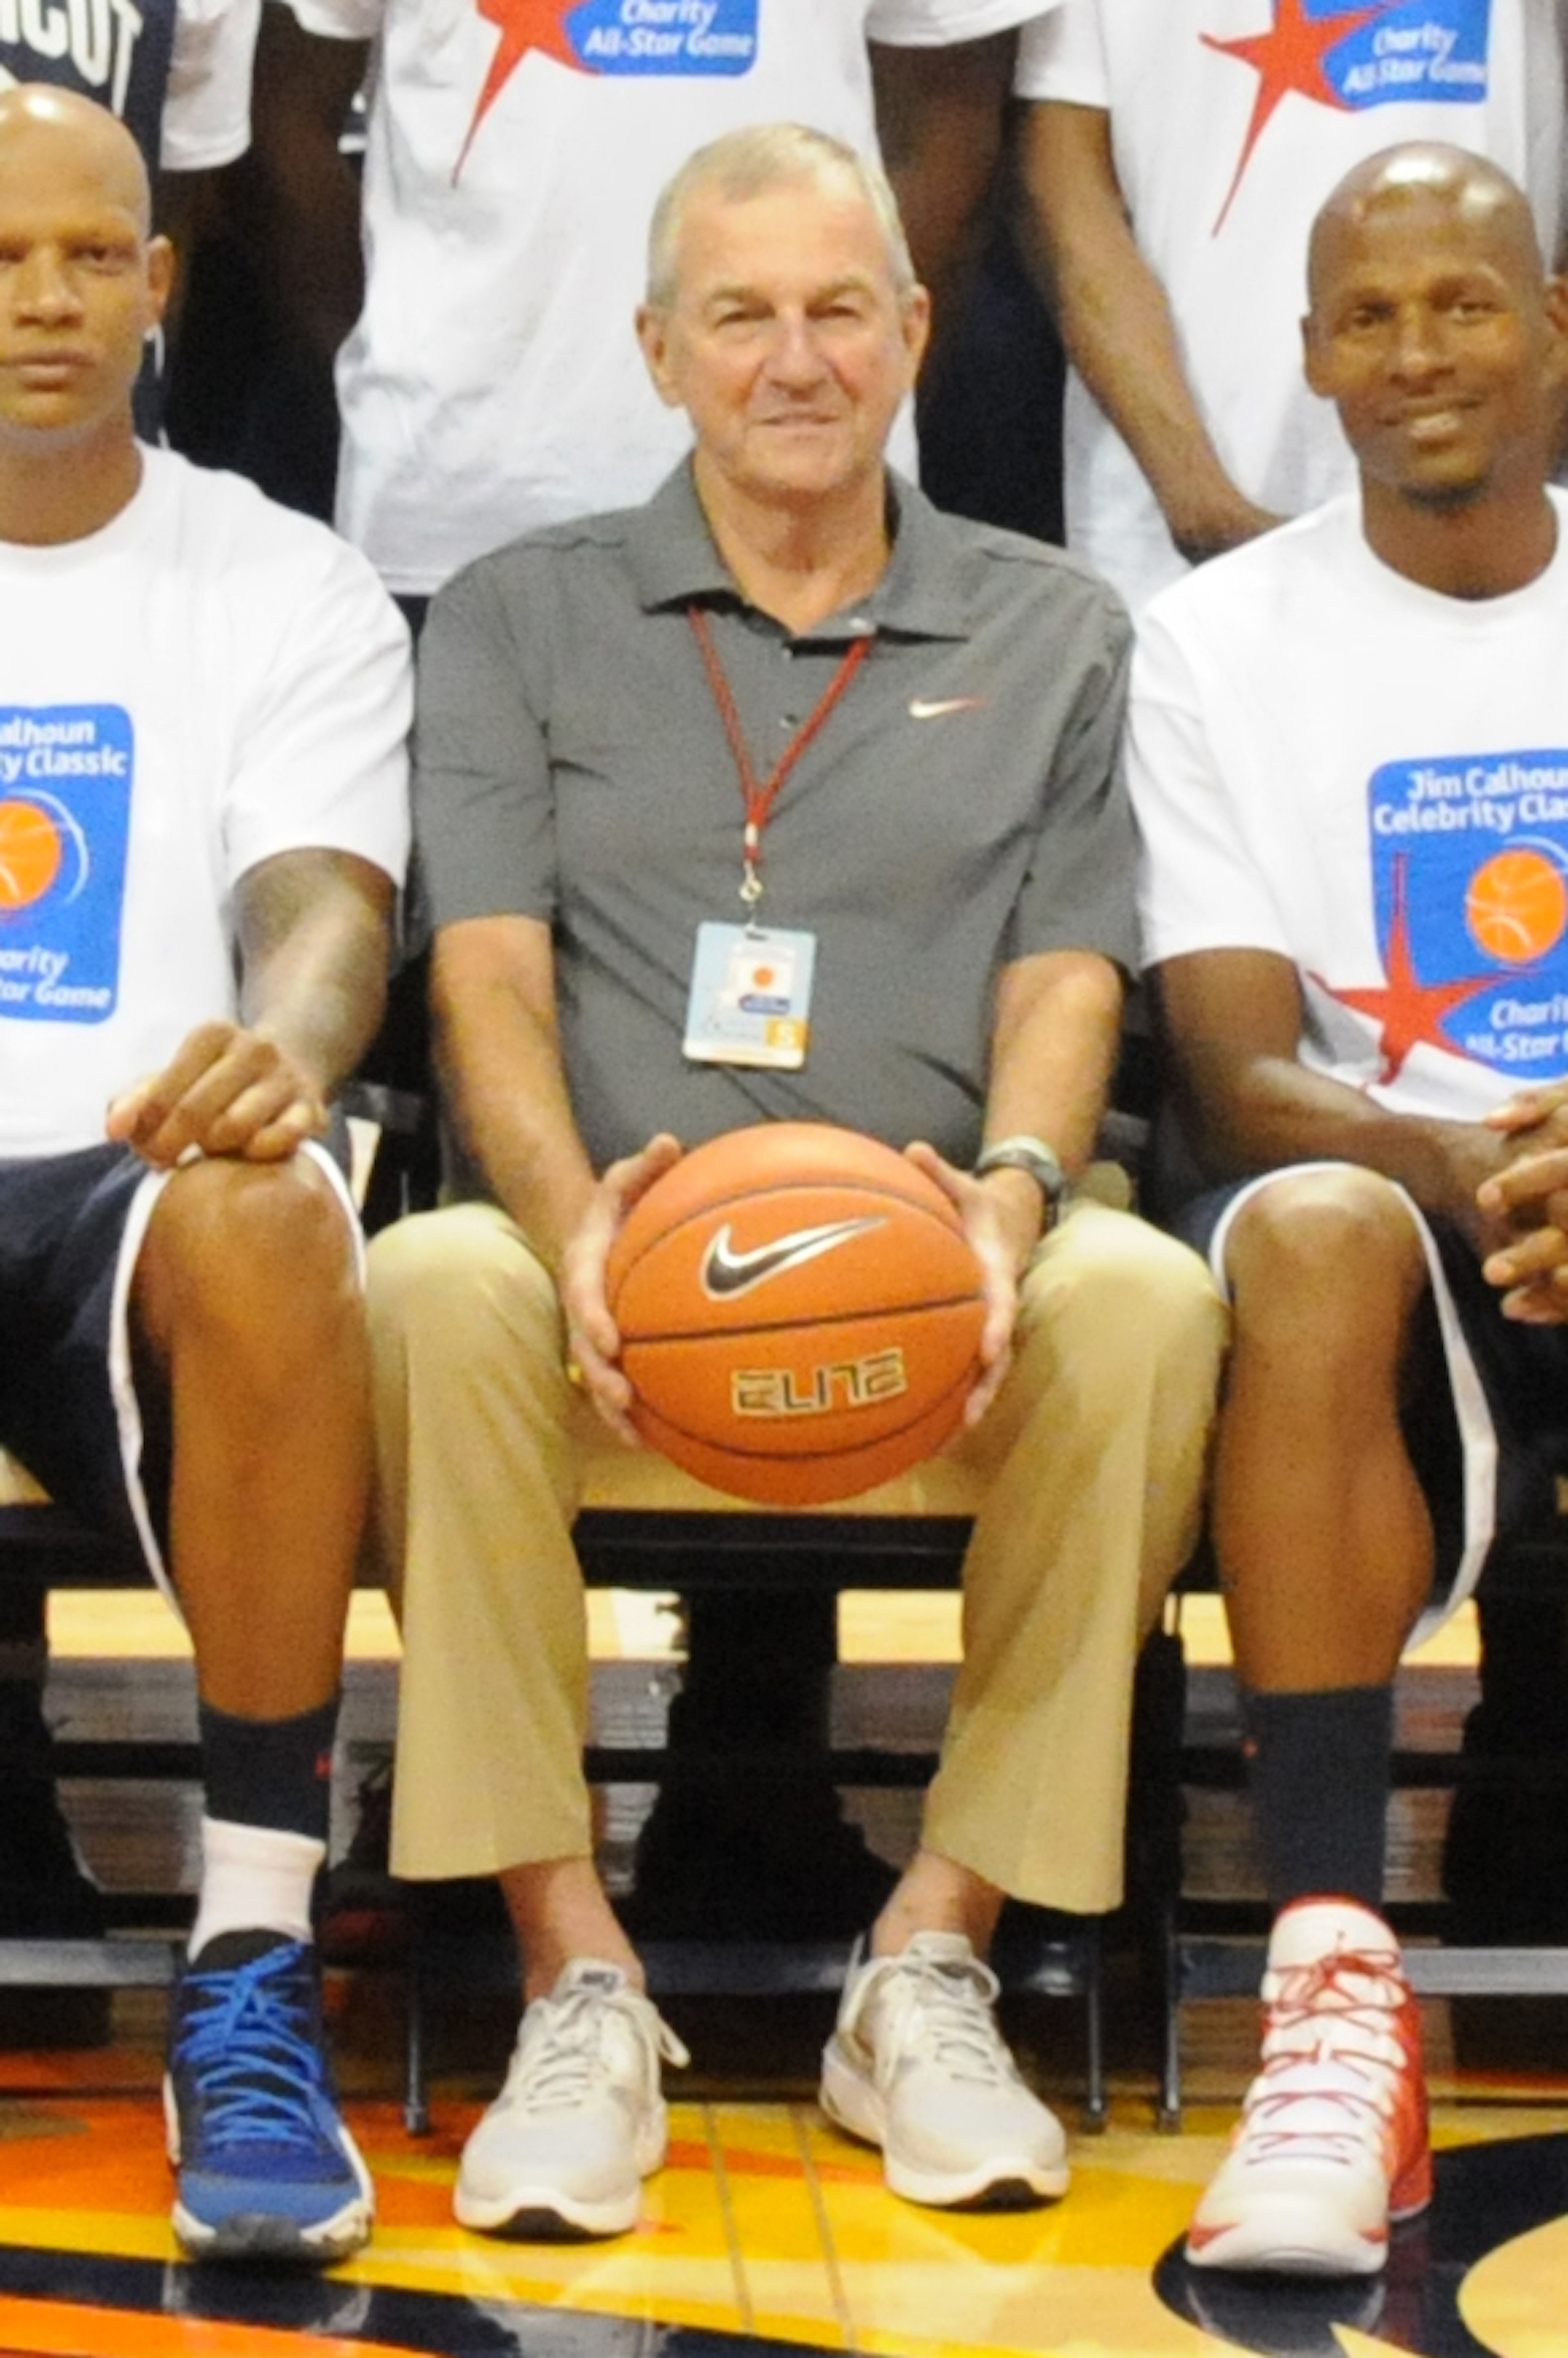 Former UConn men's basketball coach Jim Calhoun has come out of retirement to coach St. Joseph's men's basketball. (File Photo/The Daily Campus)